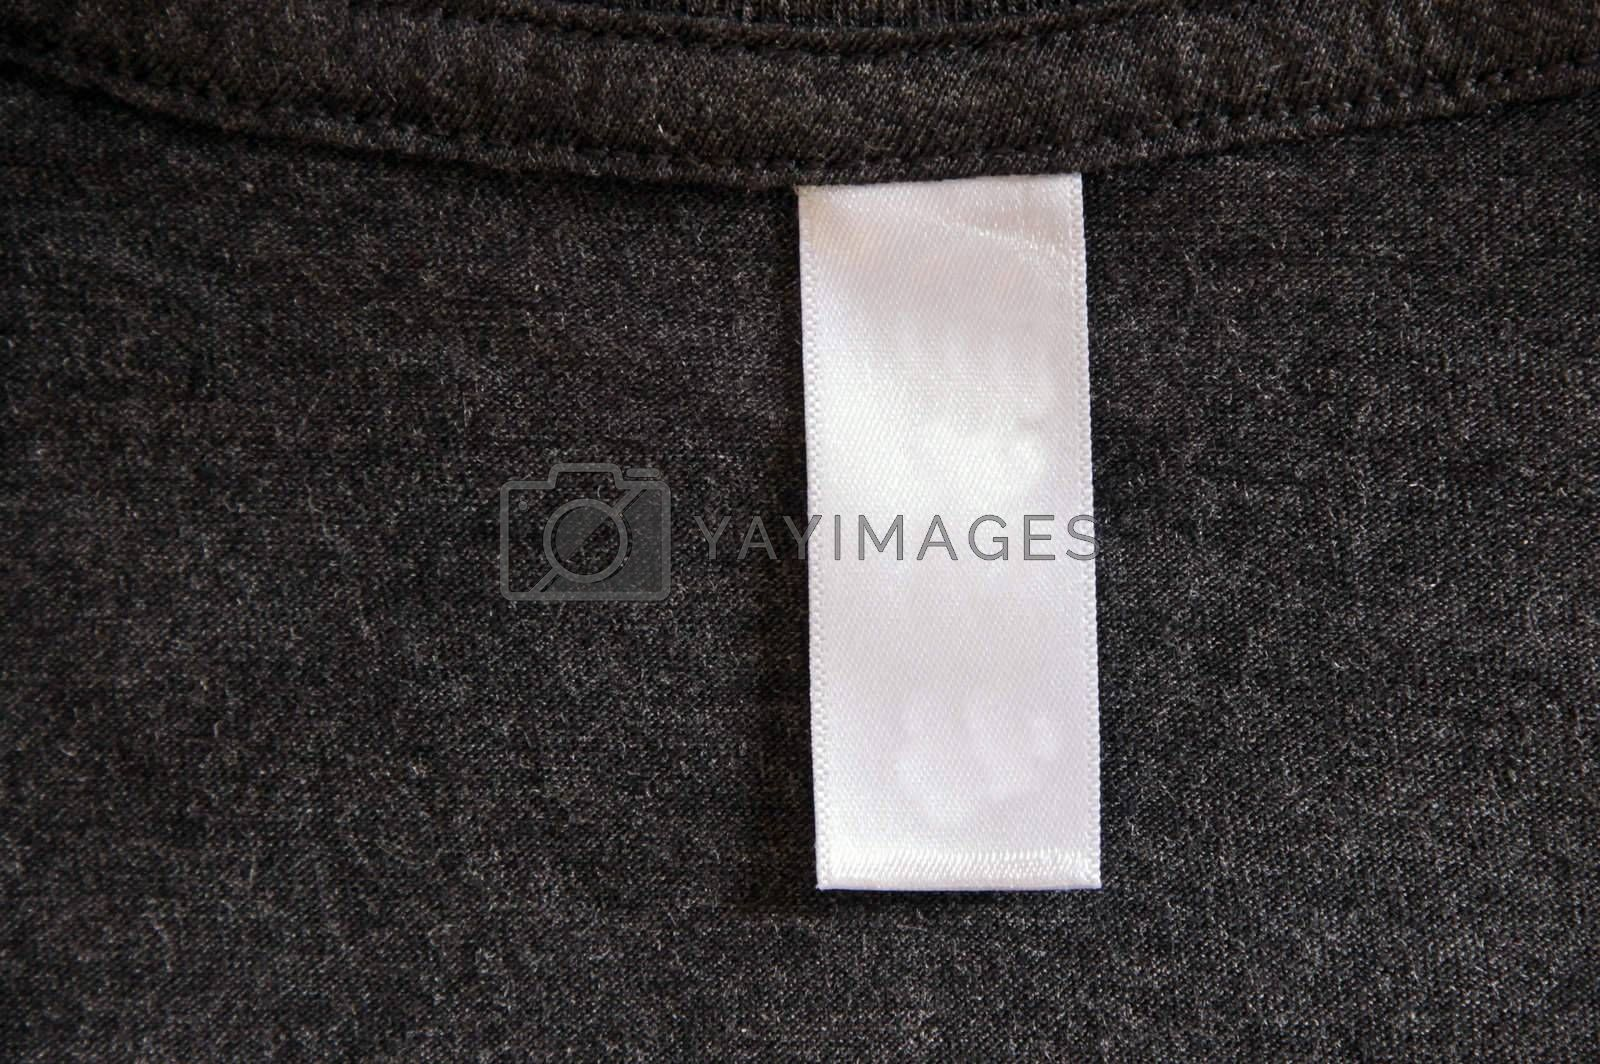 A dark gray shirt and a white label.